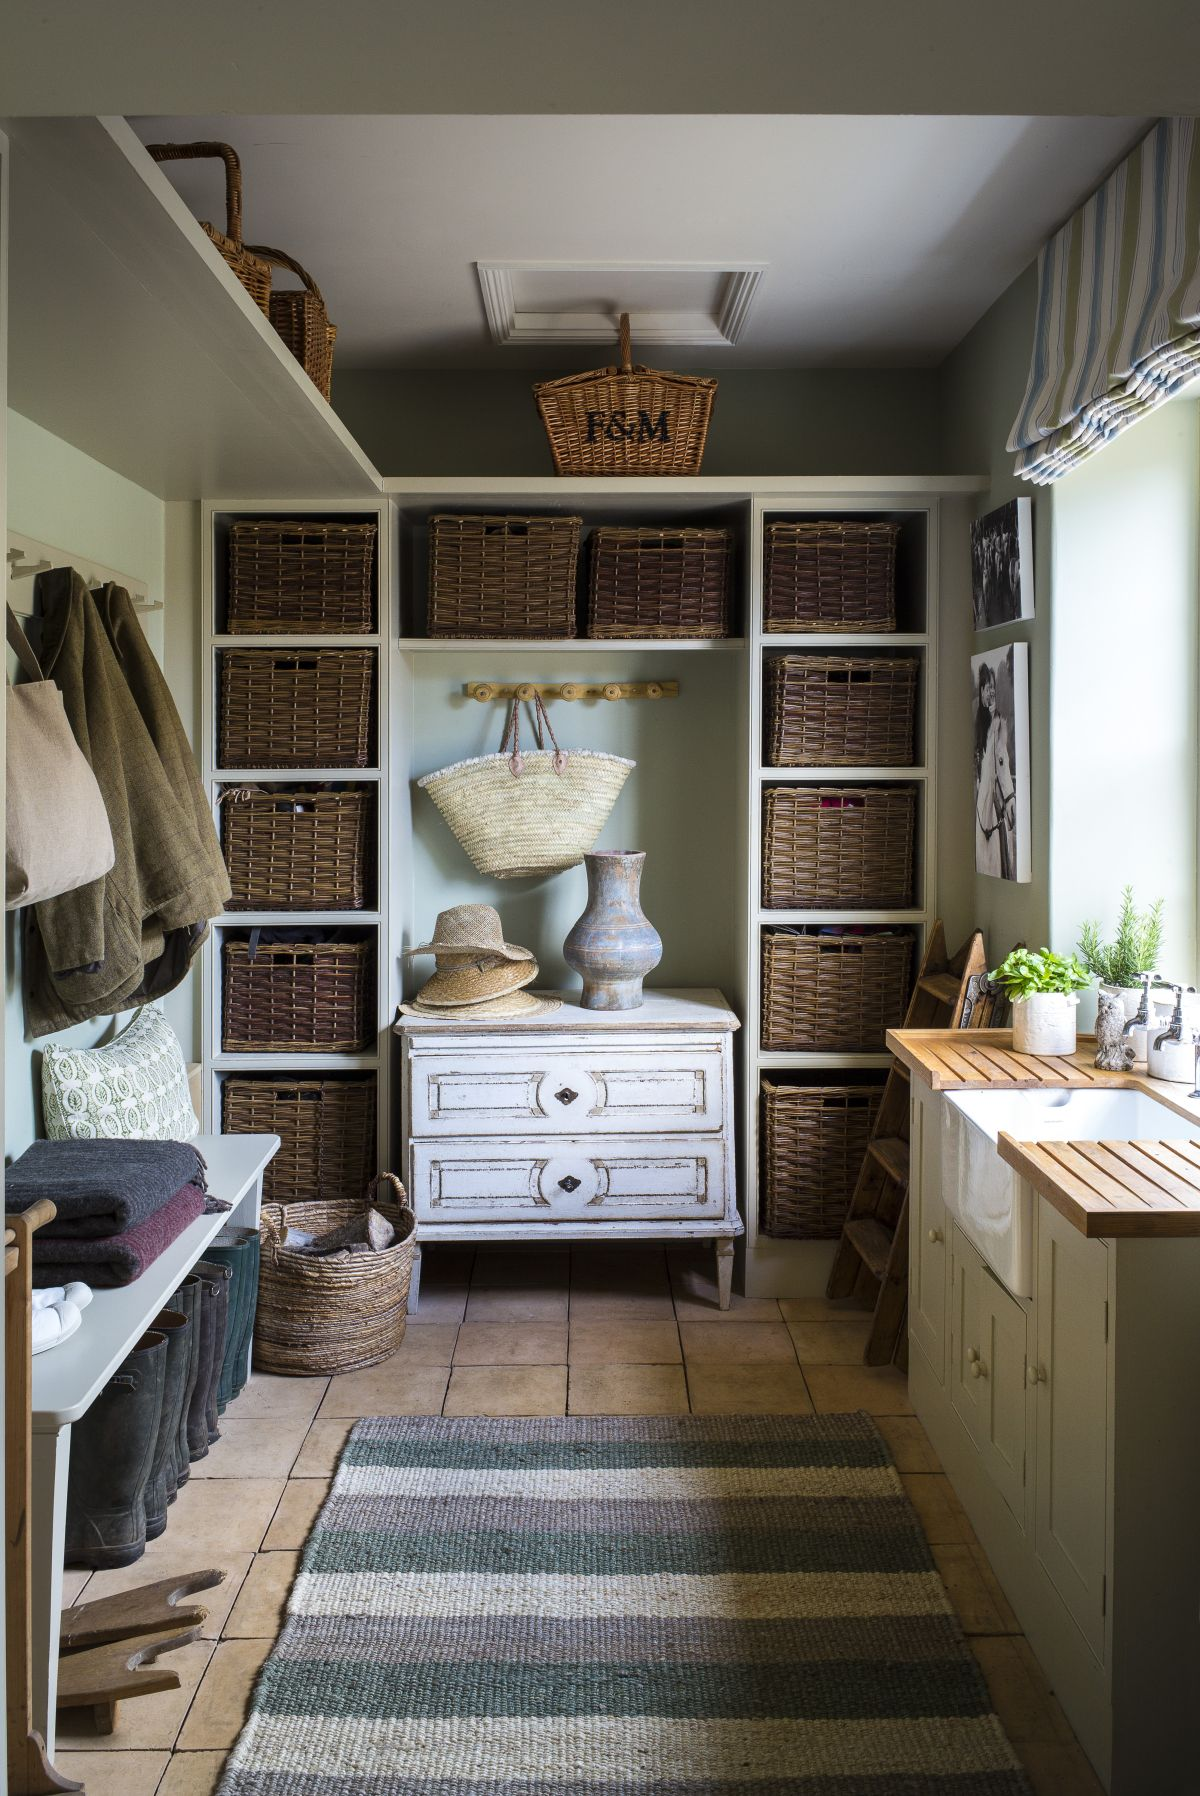 23 mudroom ideas – entryway decorating for an organized space